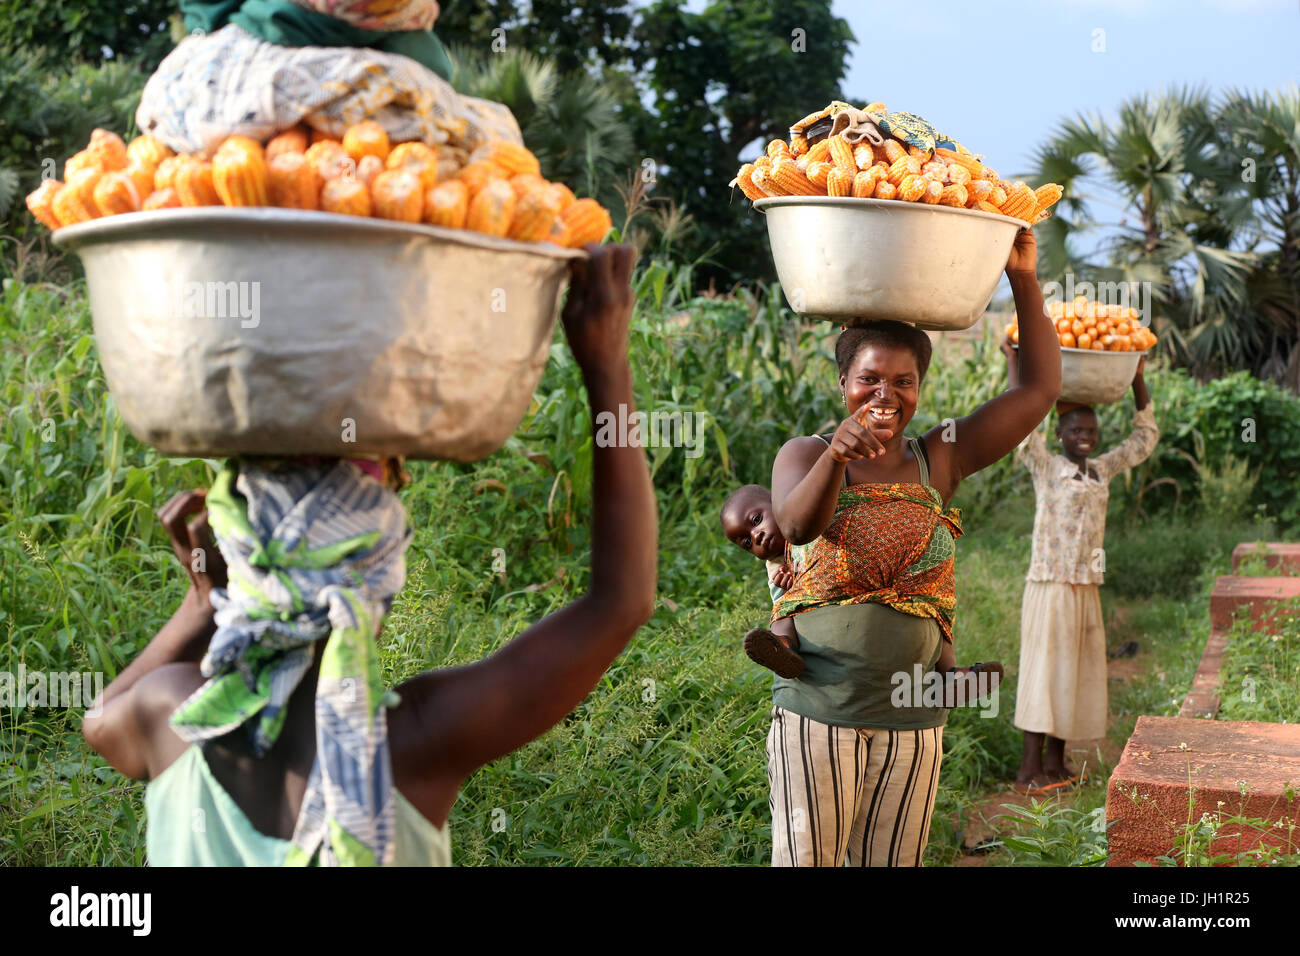 Women carrying platter with corn on head. Togo. Stock Photo